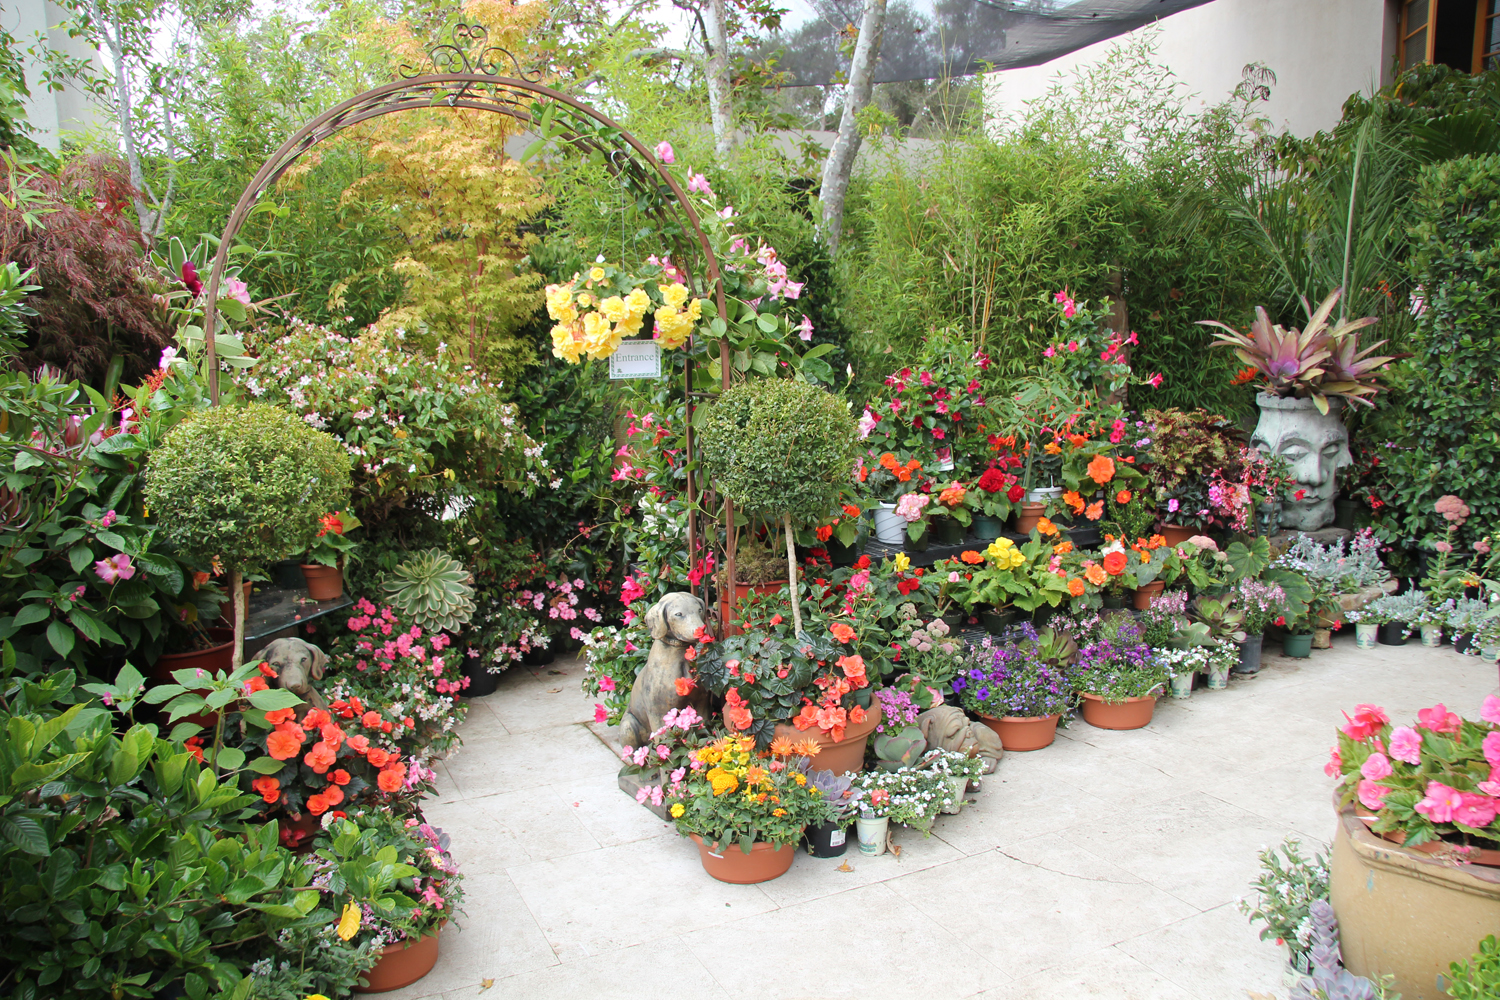 Flower Garden Gazebo : Flower Garden Gazebo Gazebo flower show - the